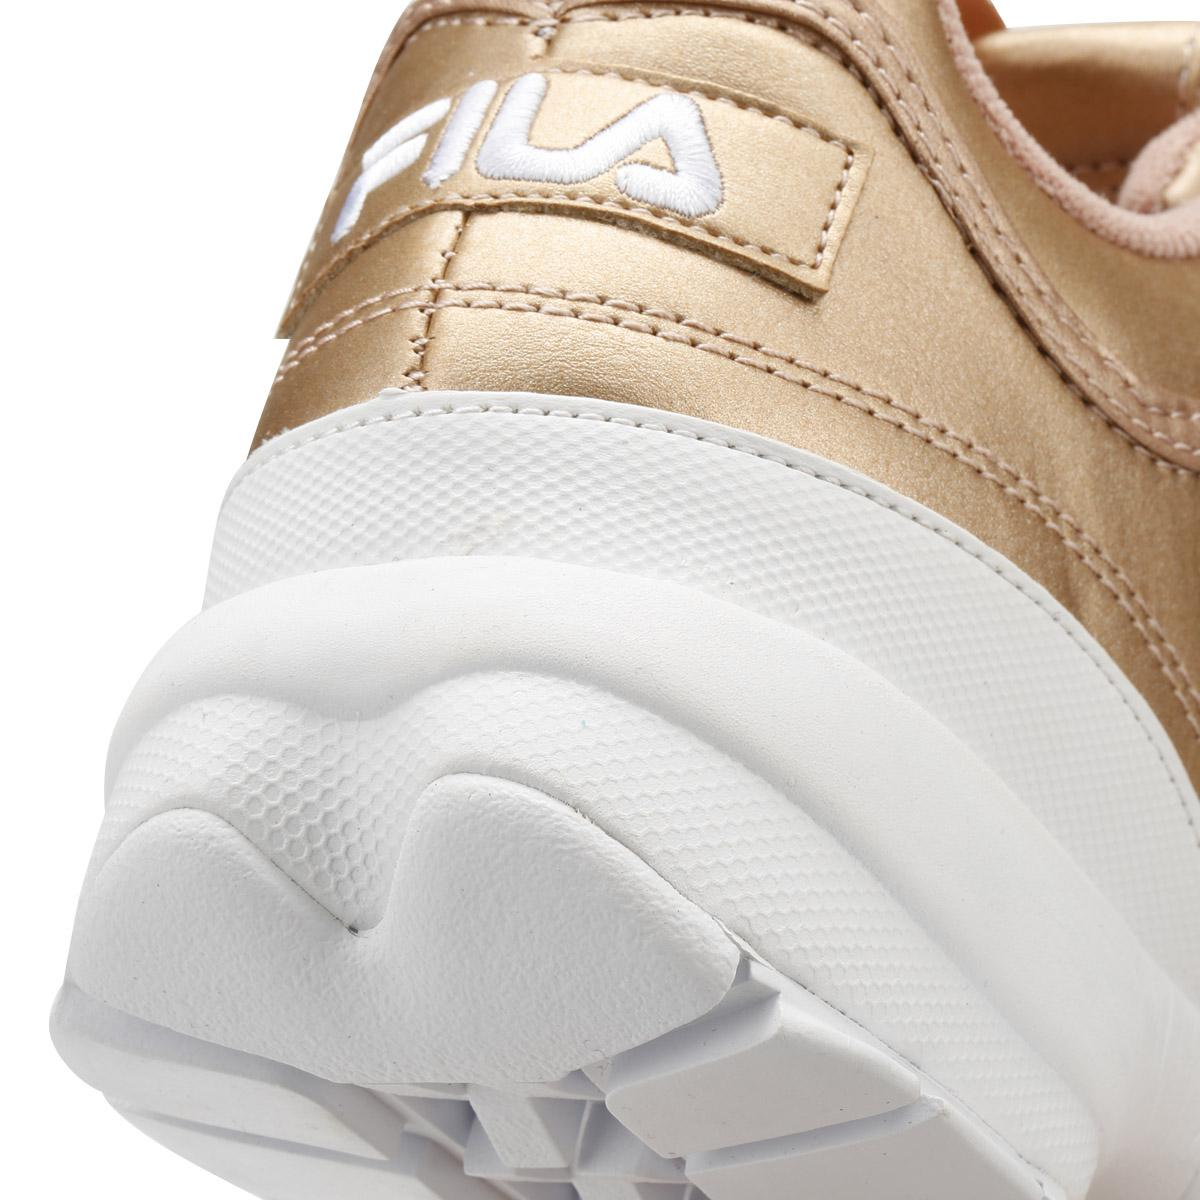 520fe1af984 Fila Disruptor Ii Womens Metallic Rose Gold Premium Trainers in ...